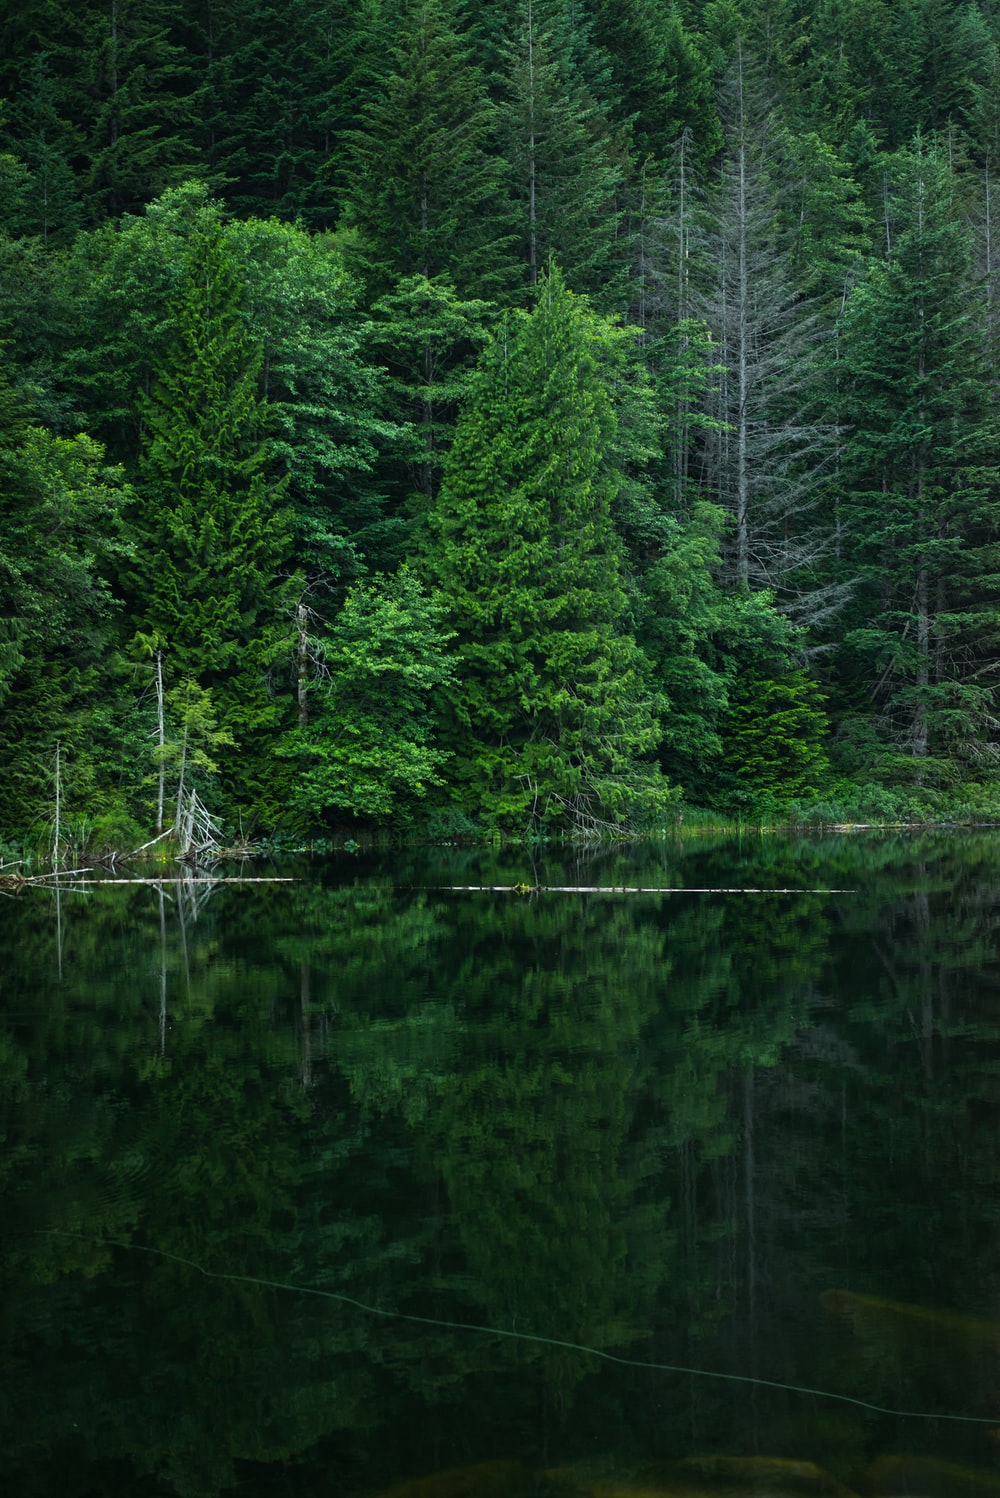 grey calm body of water near green leaf trees at daytime